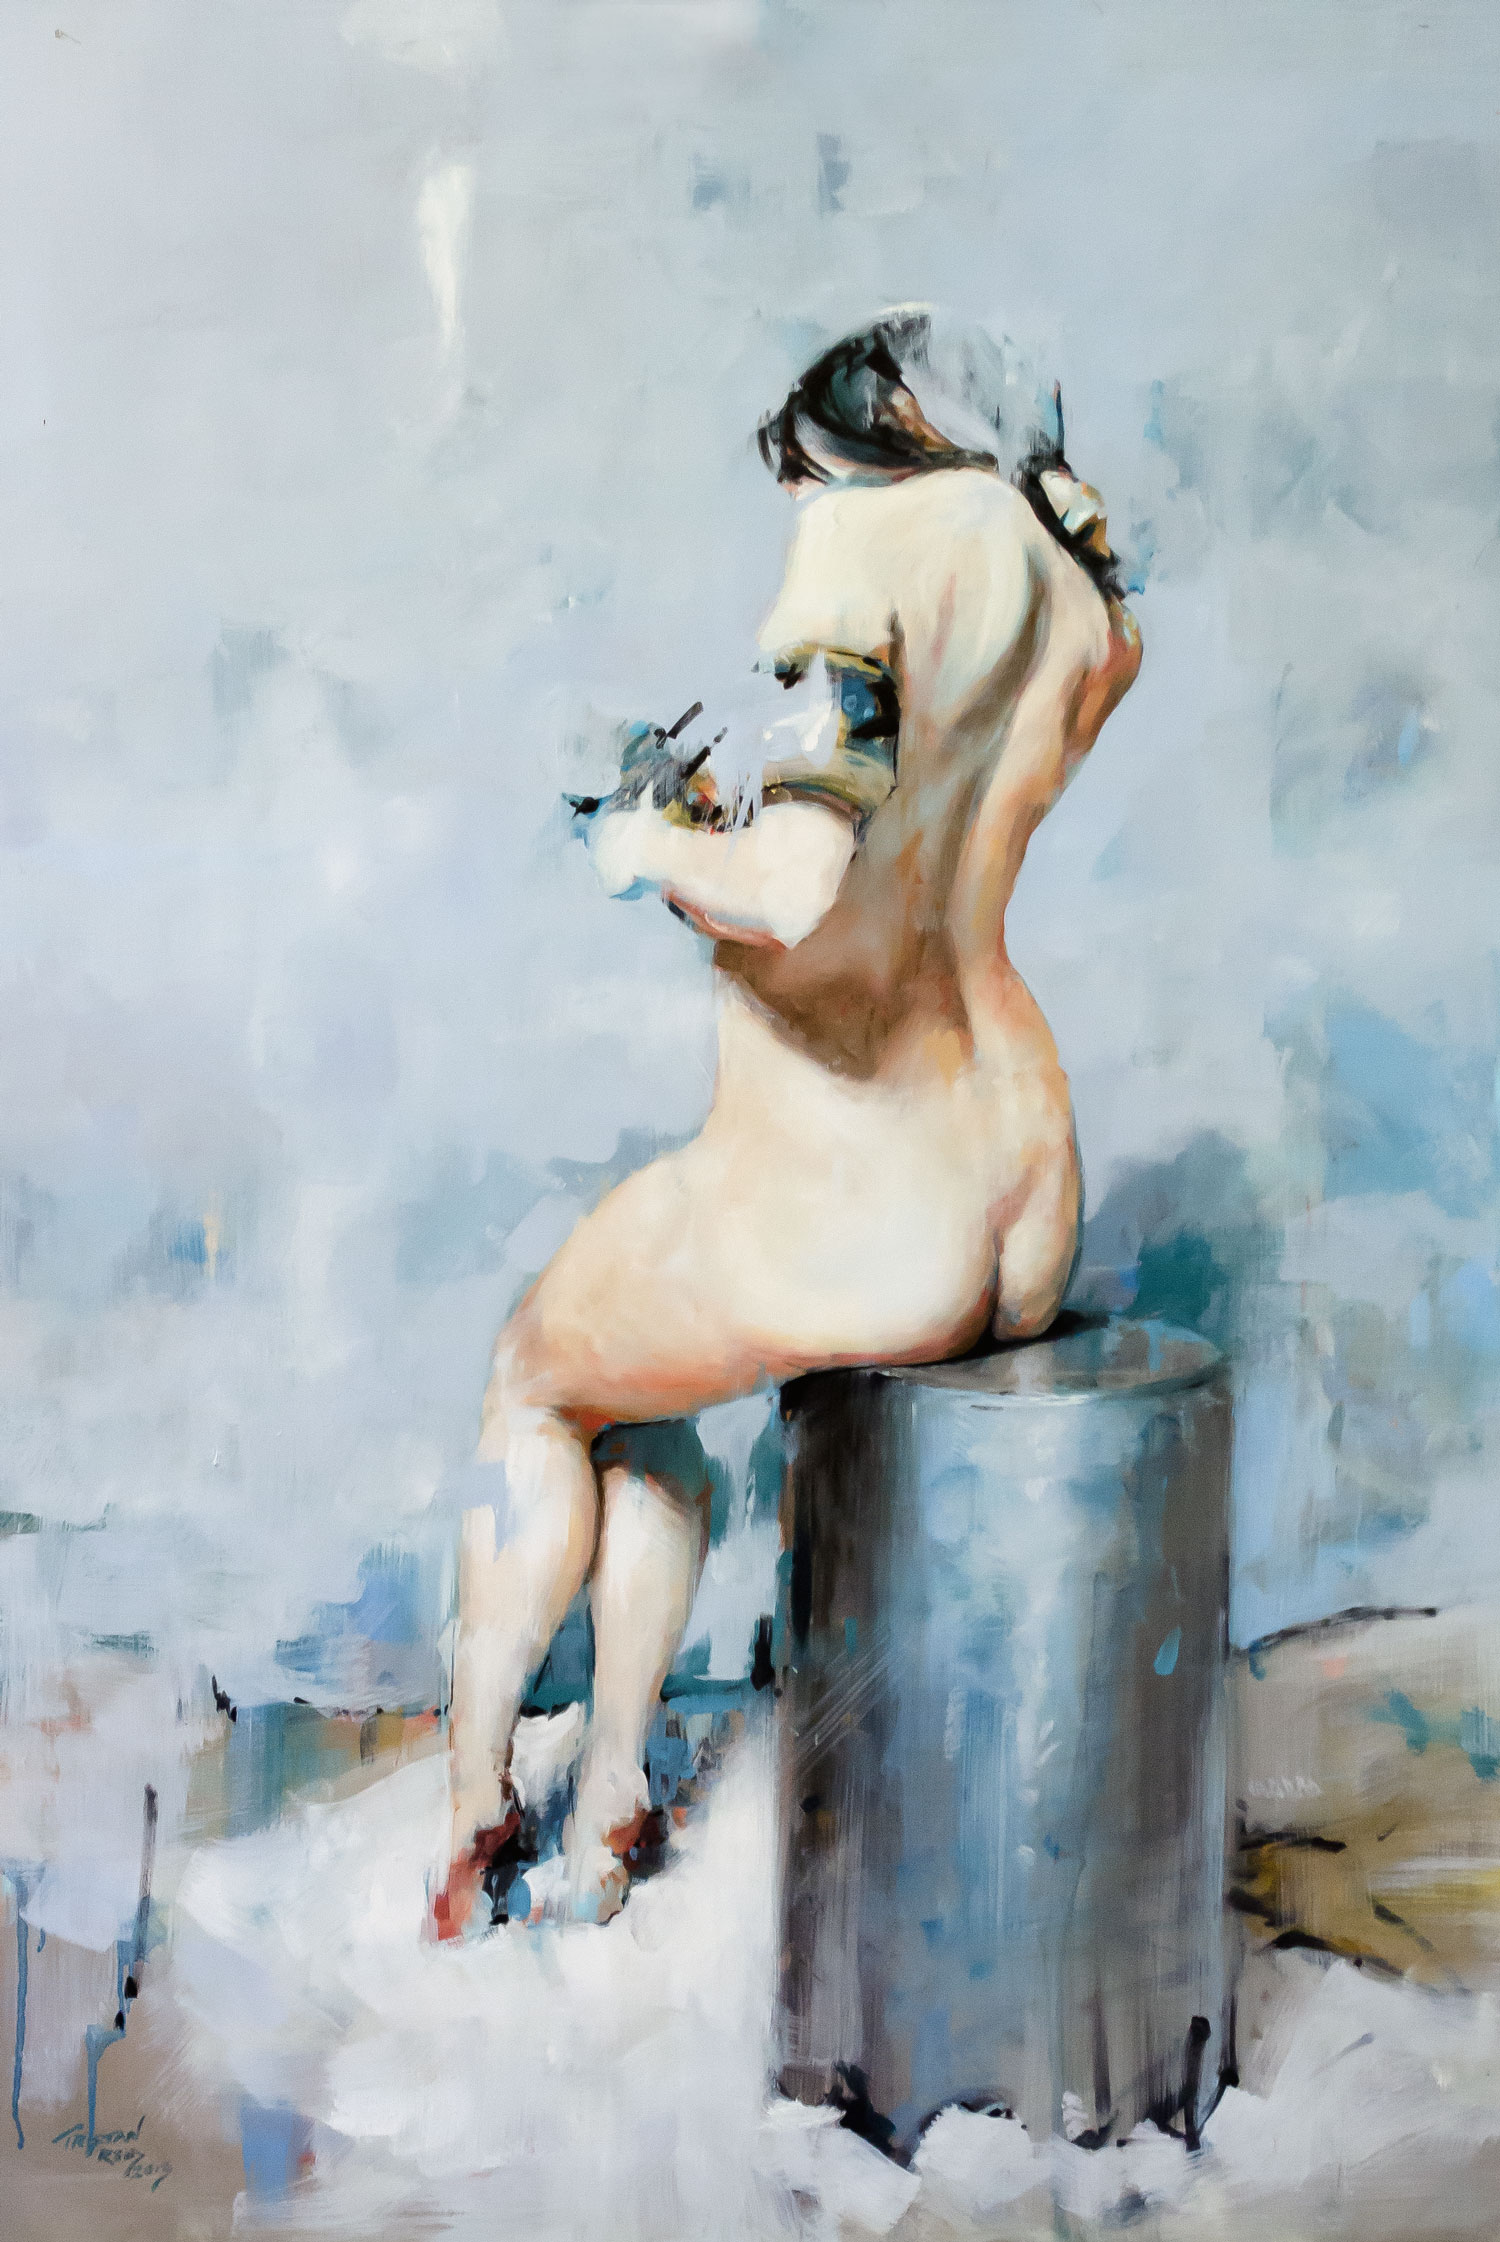 Nude 3, oil on panel, 72x48cm